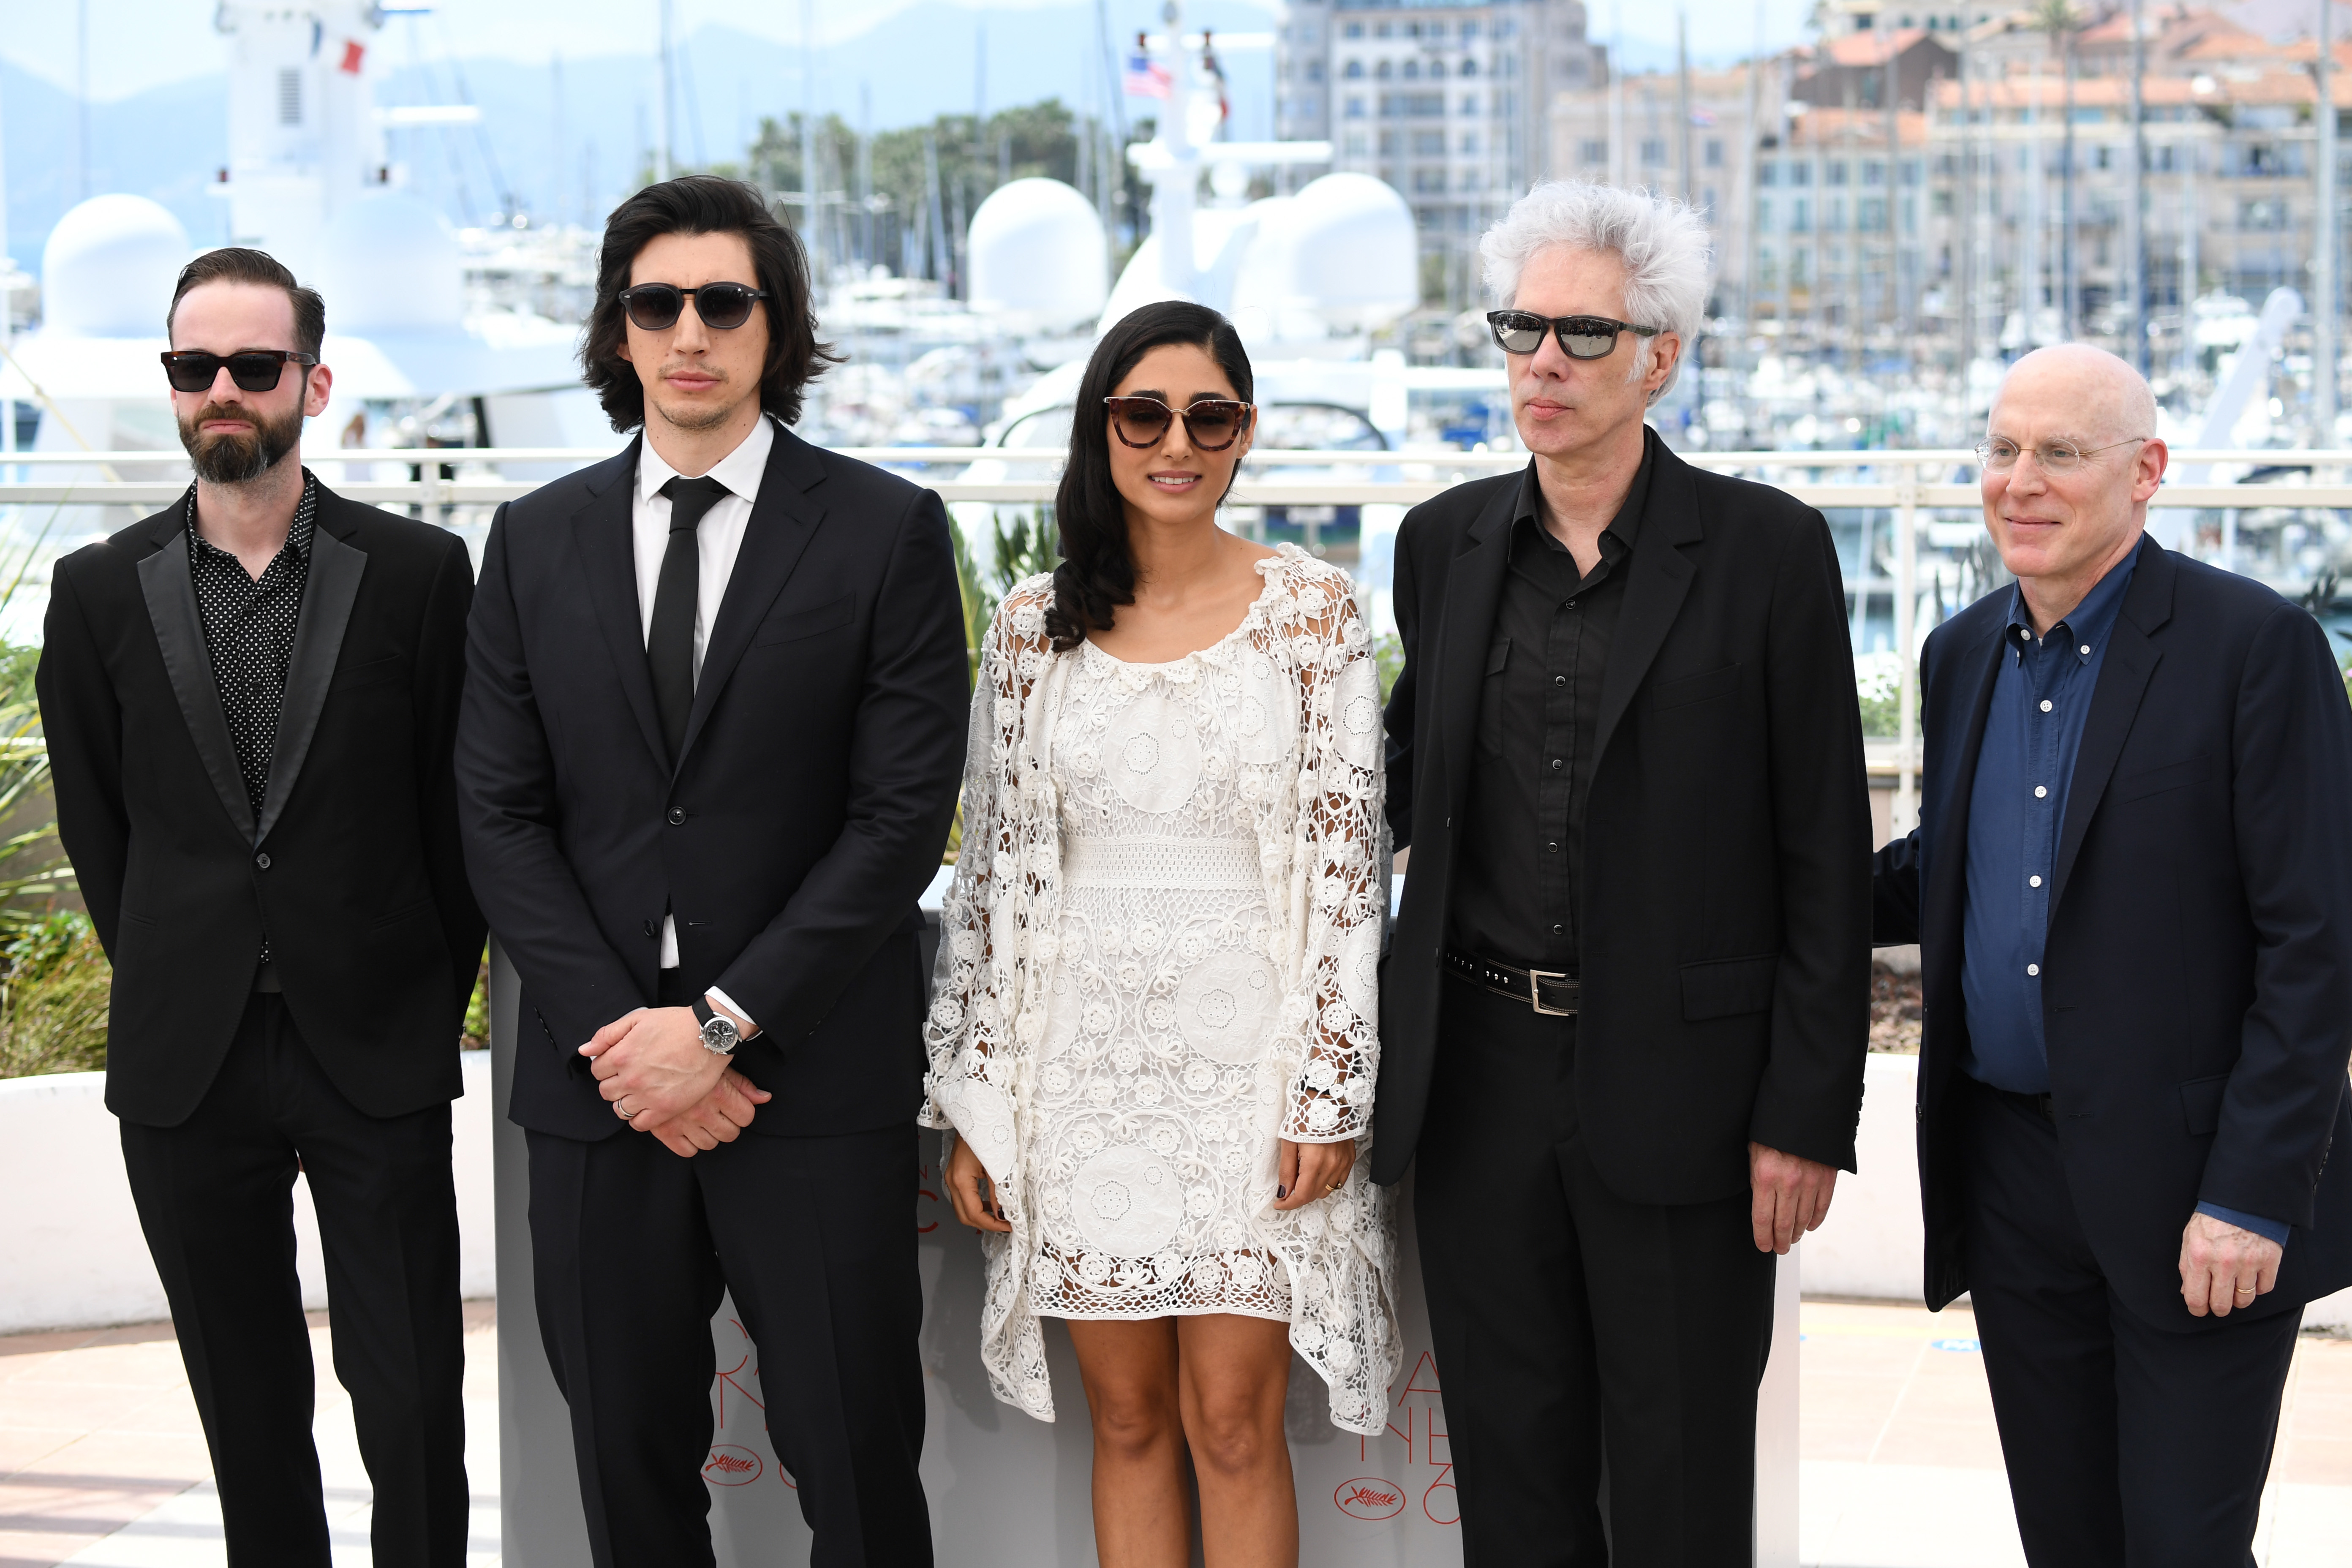 From left: Carter Logan, Adam Driver, Golshifteh Farahani, Jim Jarmusch, and Joshua Astrachan during the 69th annual Cannes Film Festival on May 16, 2016 in Cannes, France.